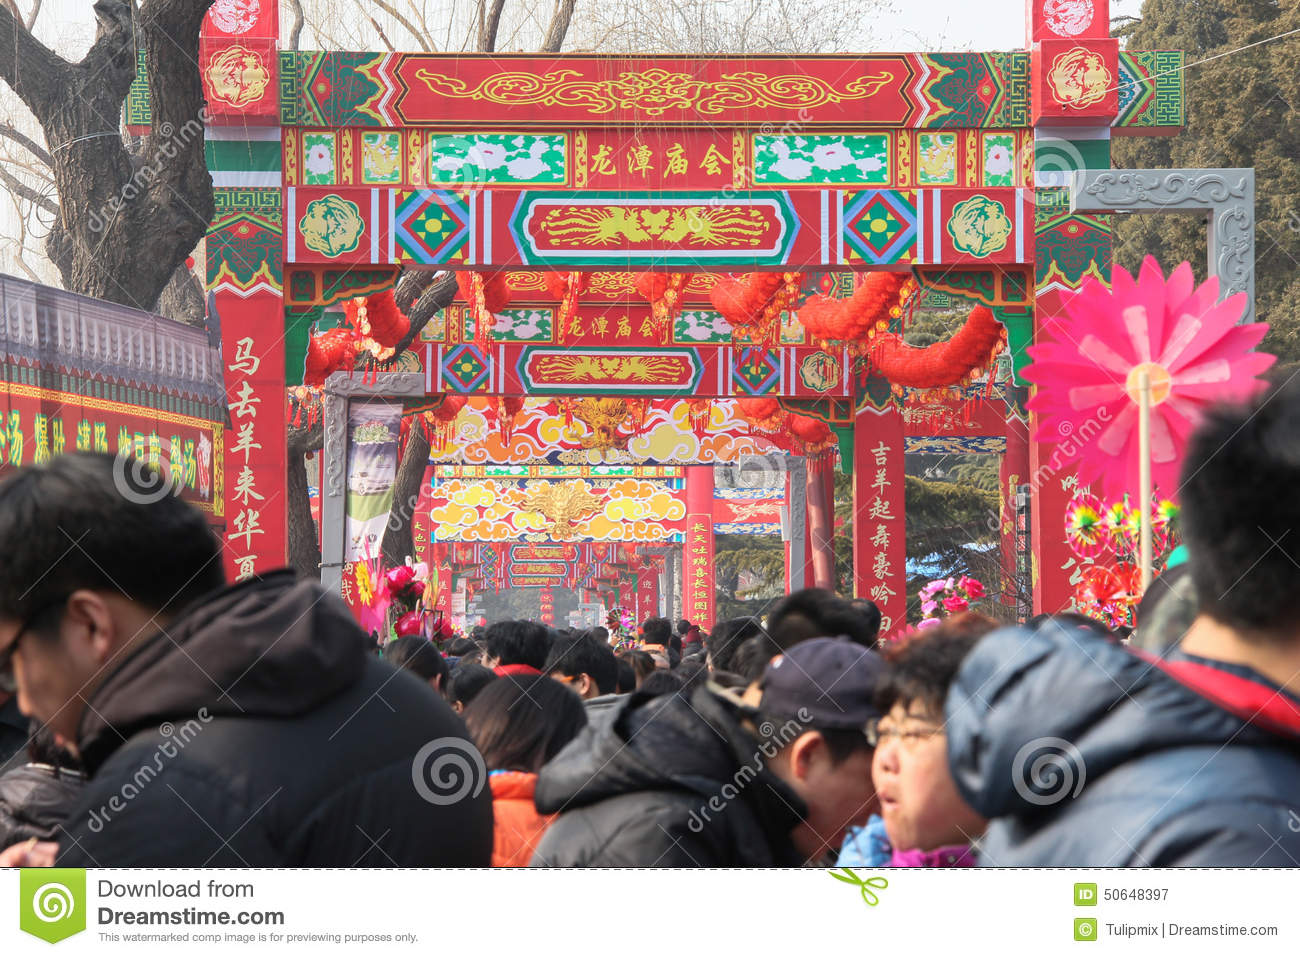 chinese new year spring festival 3 shares the spring festival is an annual event held in china and in chinese communities around the world this massive event takes place on different dates each year, but it typically.